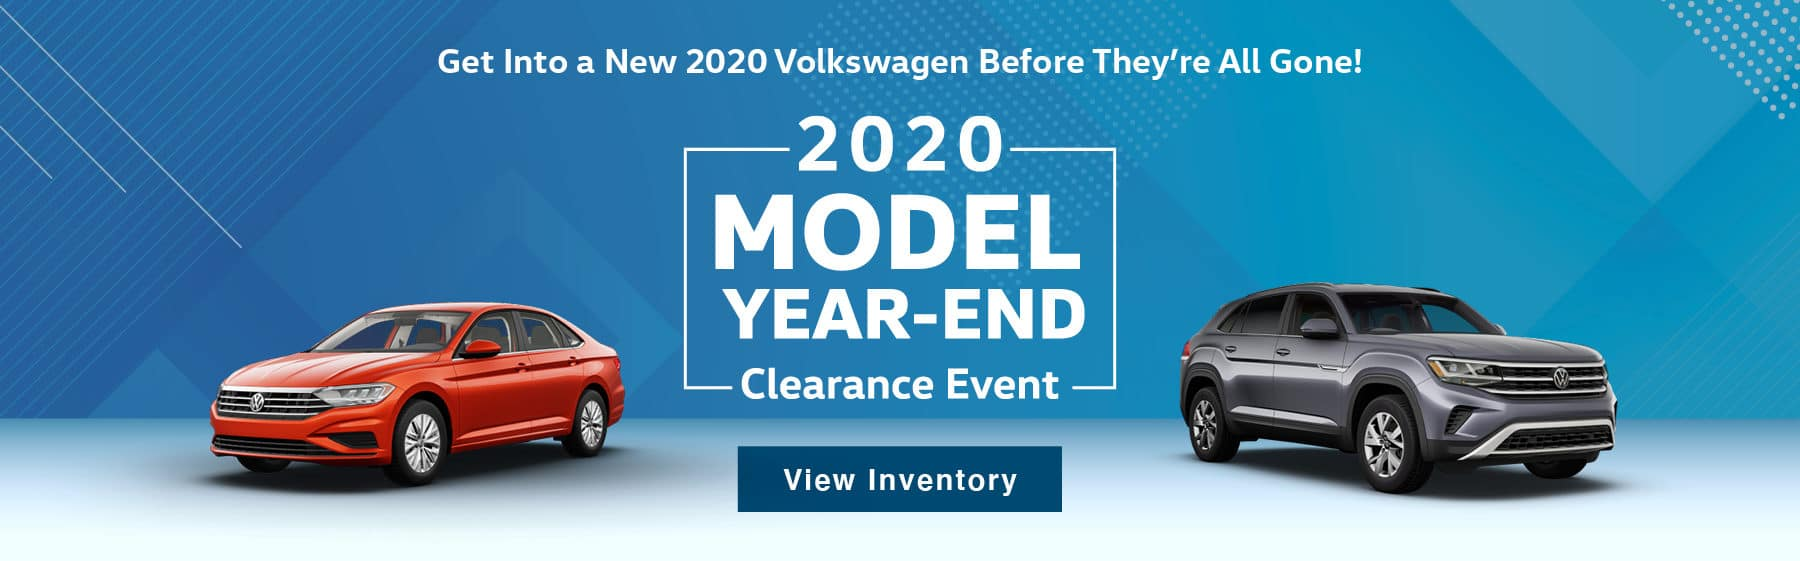 2020 Model Year-End Clearance Event. Get Into a New 2020 Volkswagen Before They're All Gone!